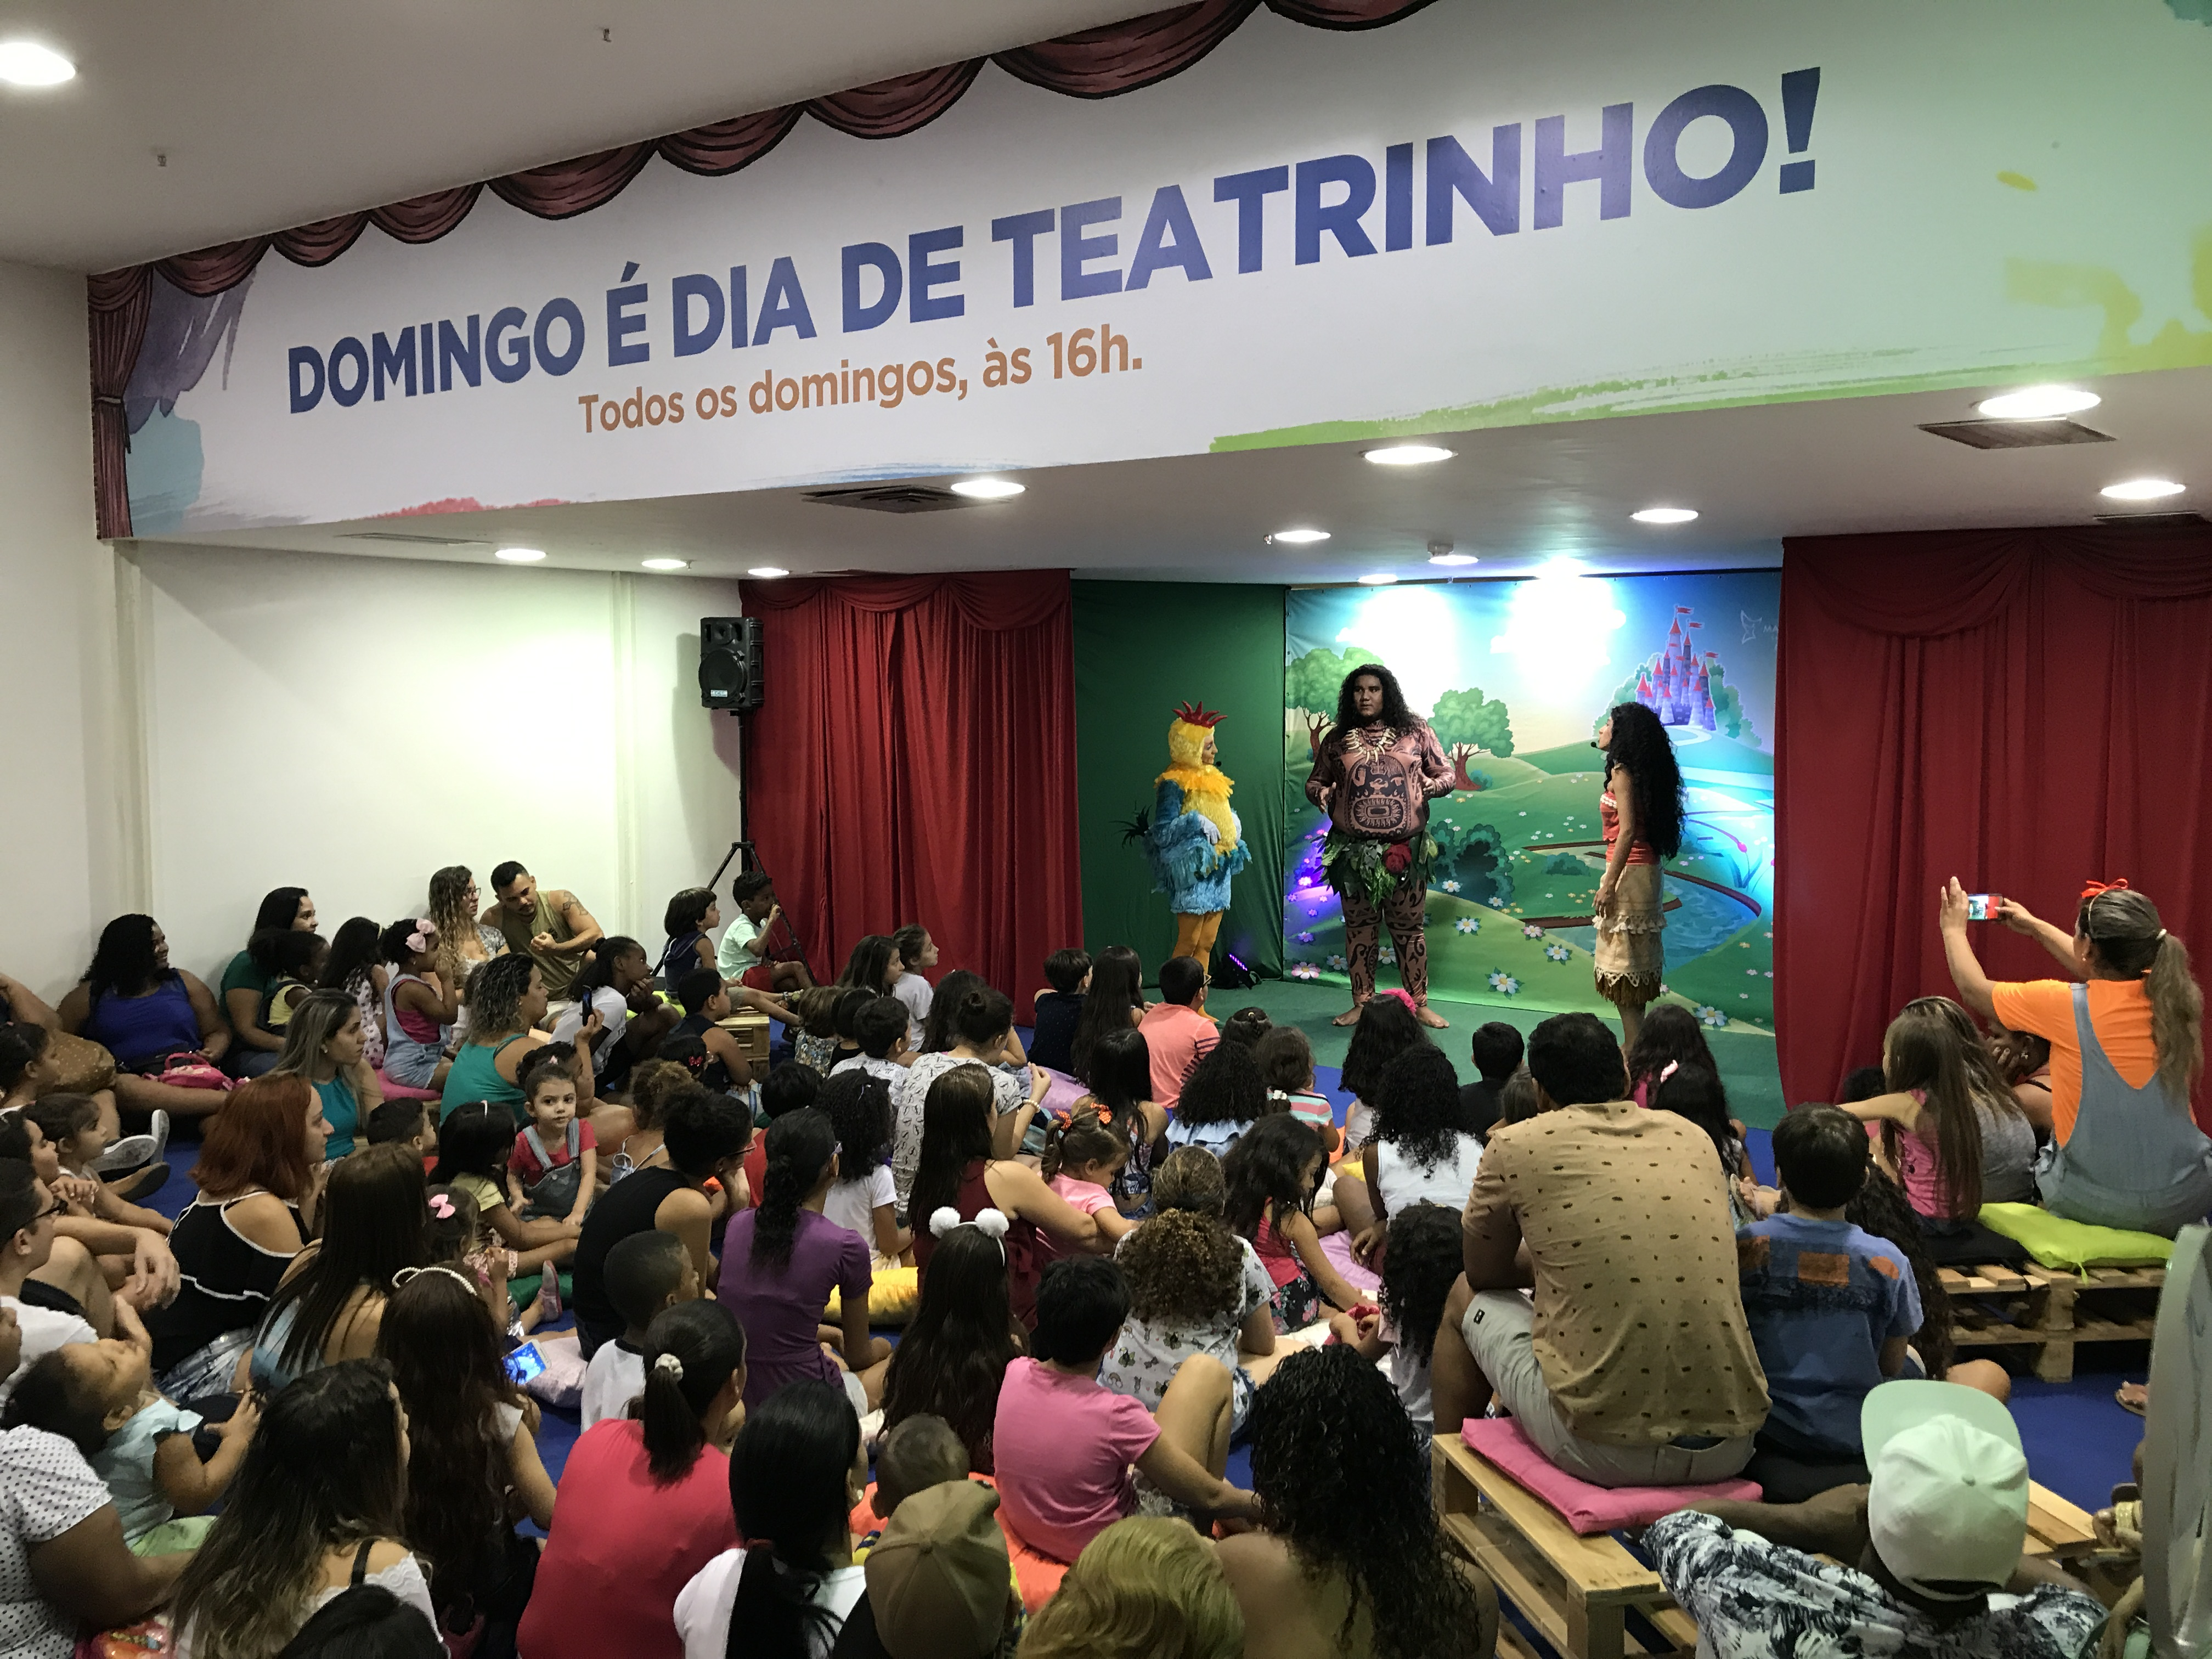 teatro madureira shopping